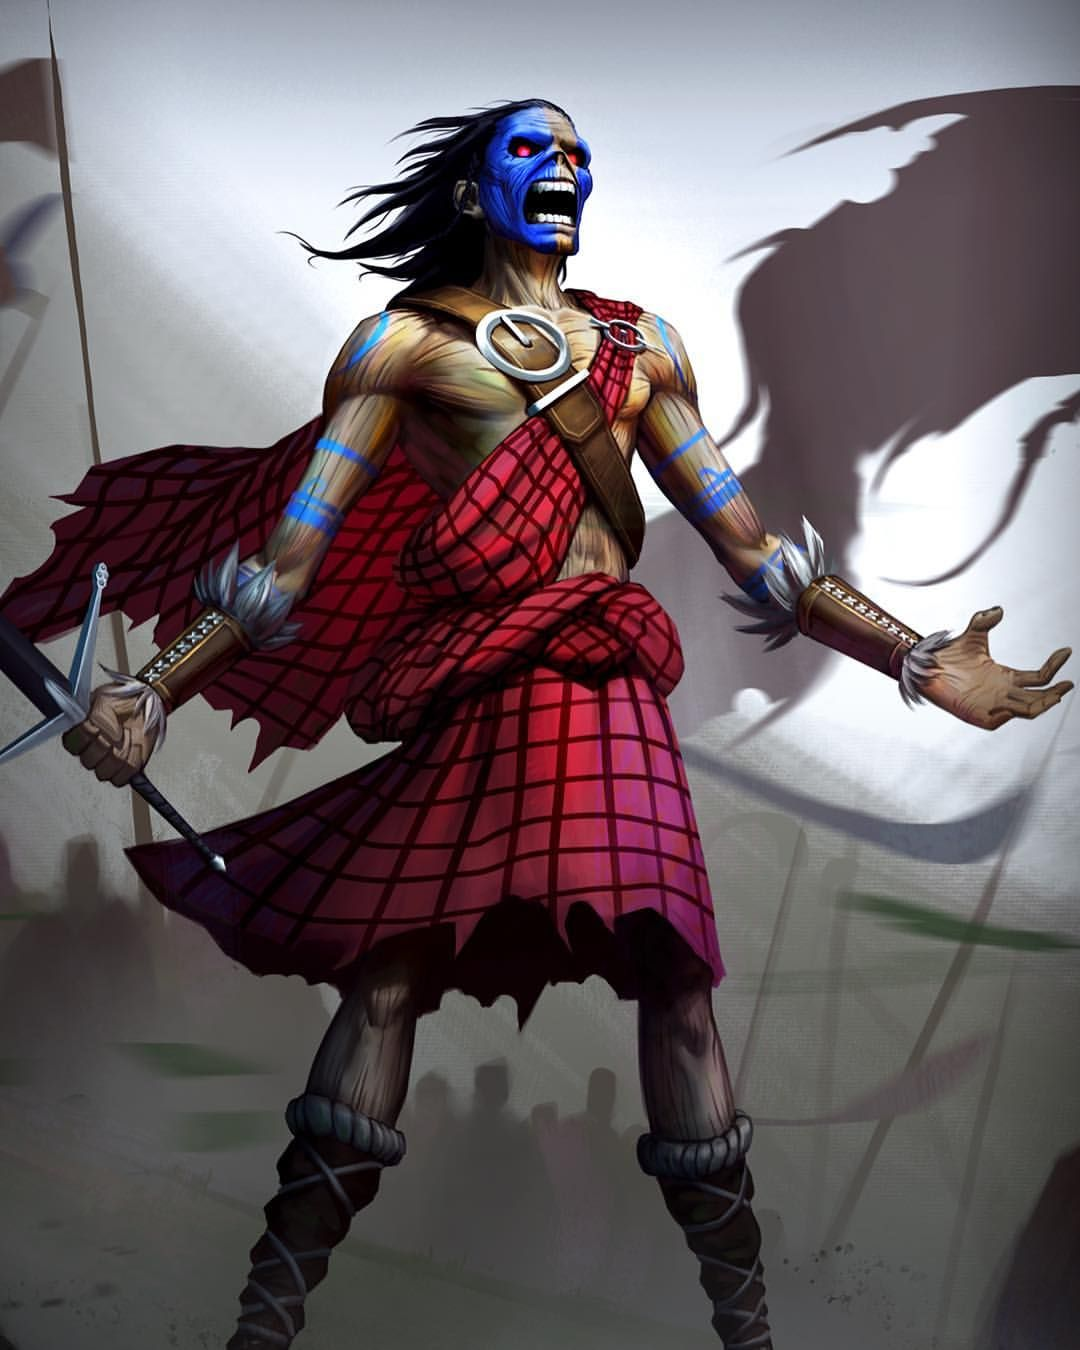 Wallpaper Iphone Iron Maiden: Freeeeedom!!!! Download This Awesome Clansman Eddie